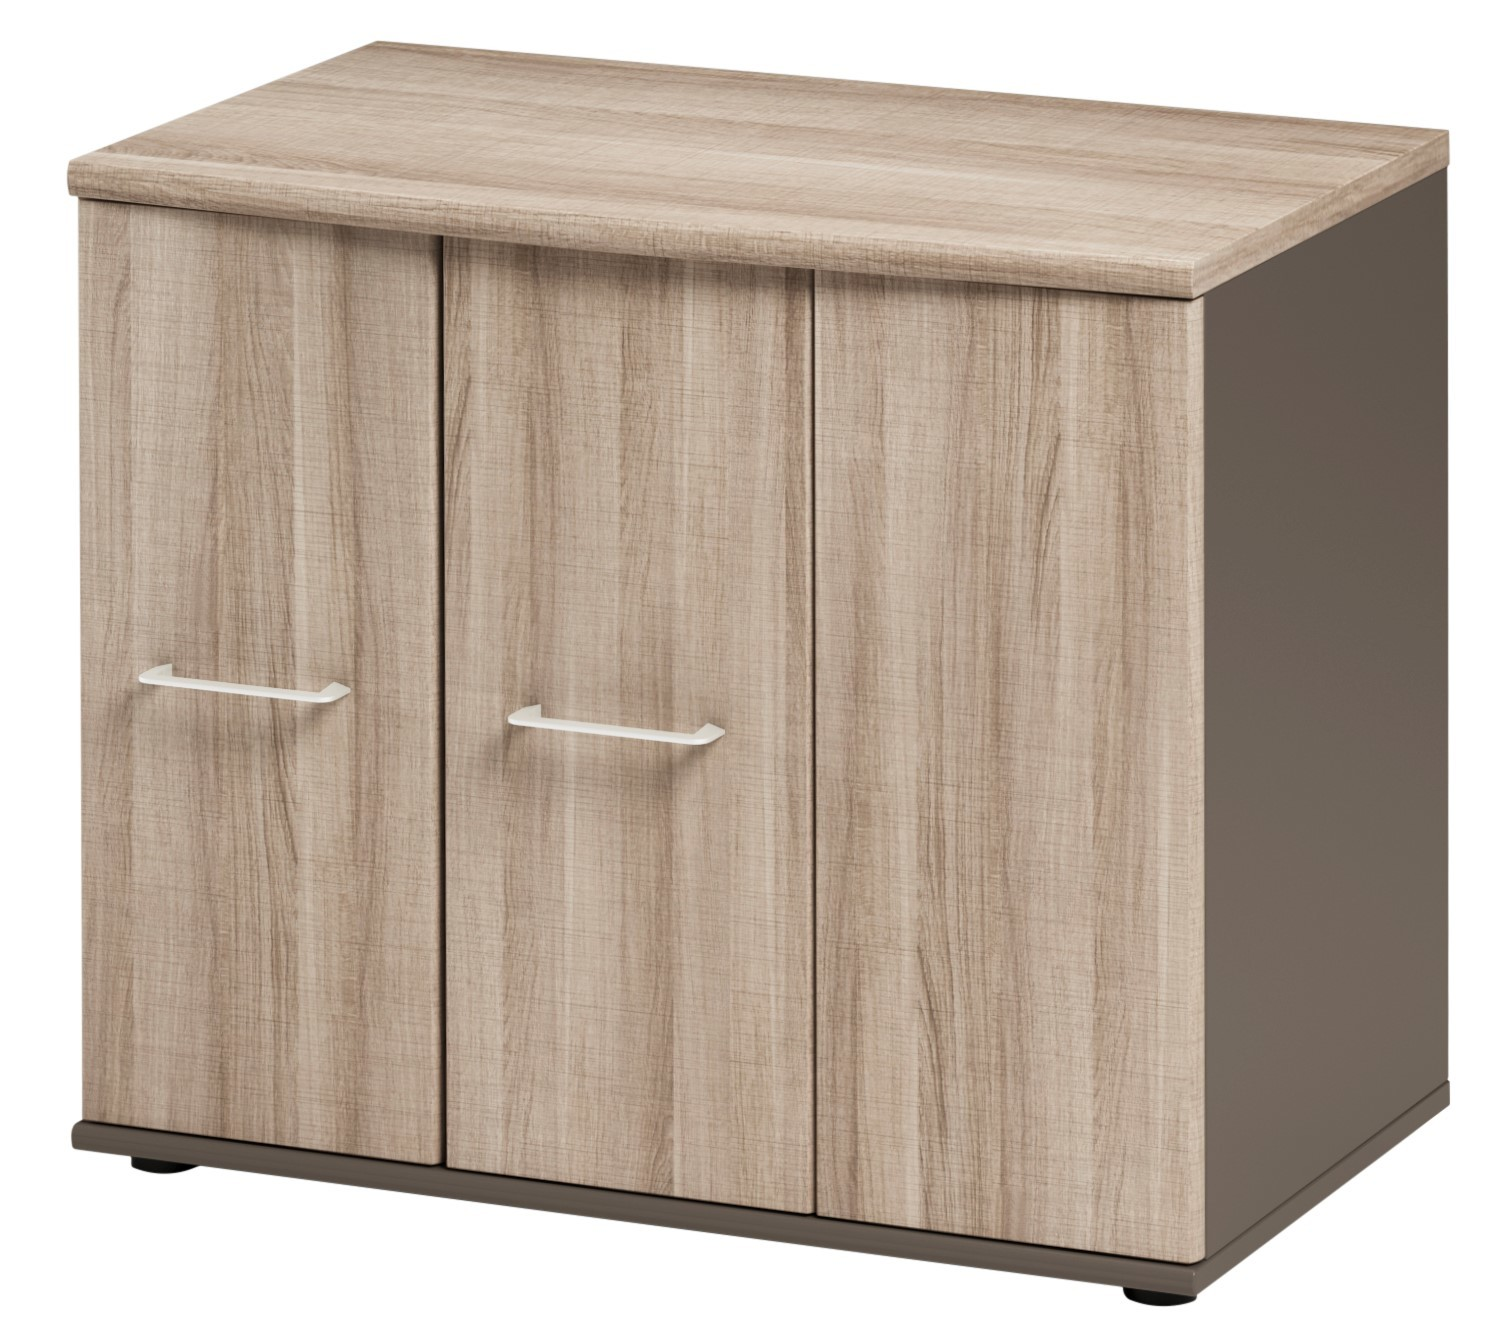 An image of Jazz Low Cupboard with Folding Doors